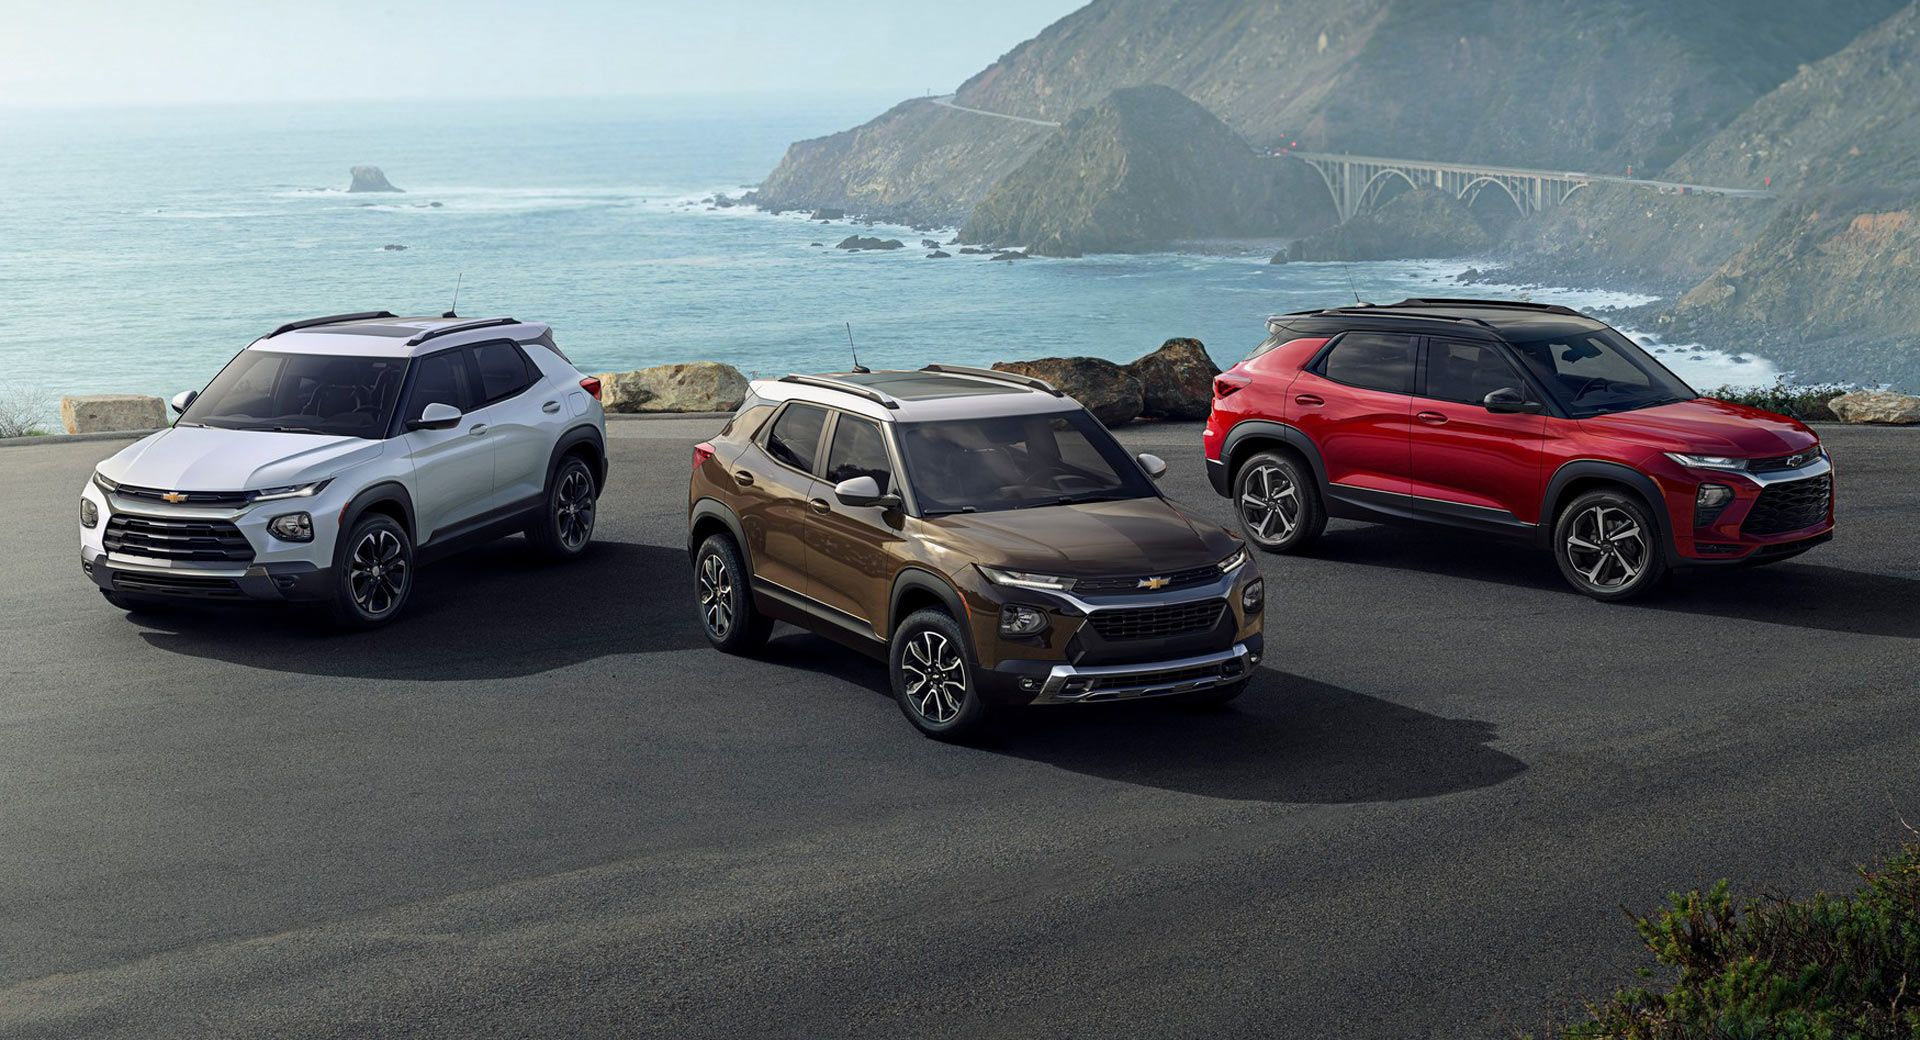 2021 Chevrolet Trailblazer Rated At 28 Mpg Combined With 1 3l Turbo Chevrolet Chevrolettrailblazer Epa In 2020 Chevy Trailblazer Chevrolet Trailblazer Chevrolet Suv